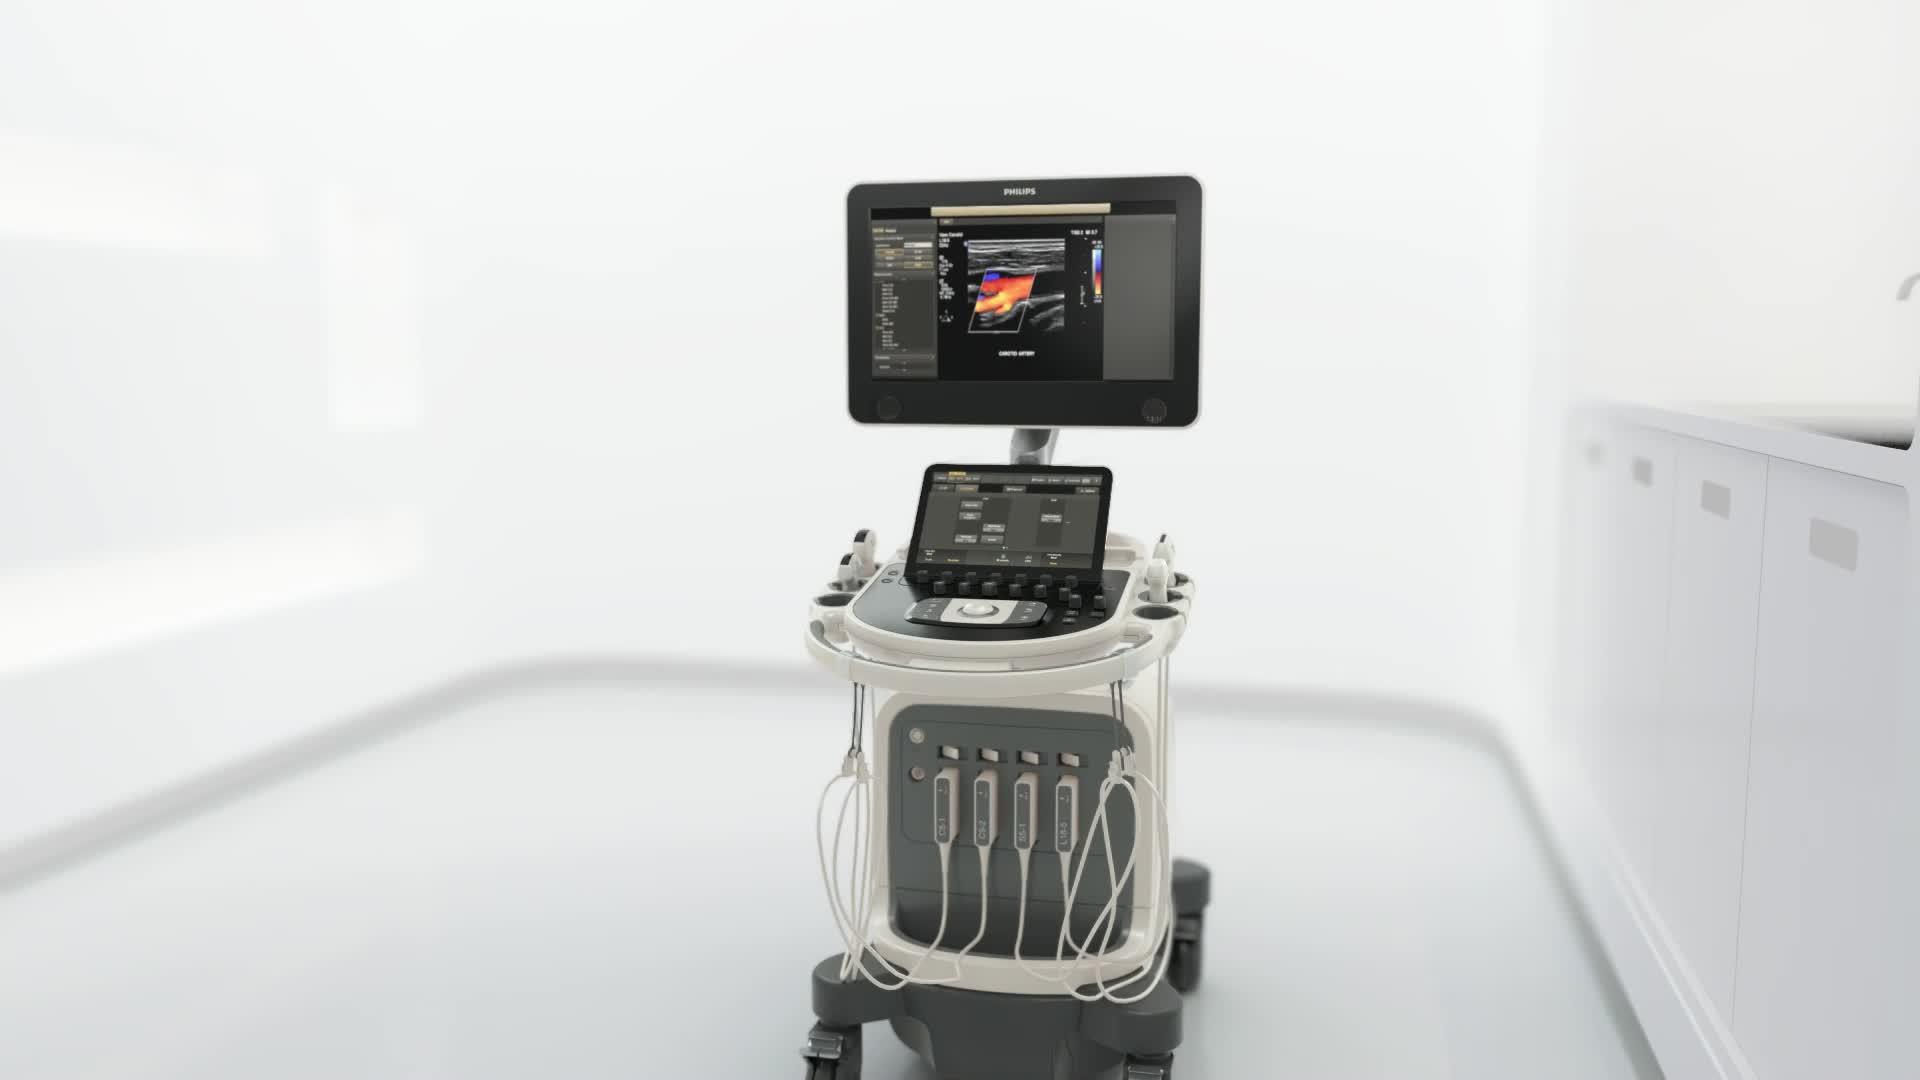 Designed with the everyday challenges of healthcare professionals in mind, Affiniti delivers advanced tools for the needs of a busy ultrasound practice.